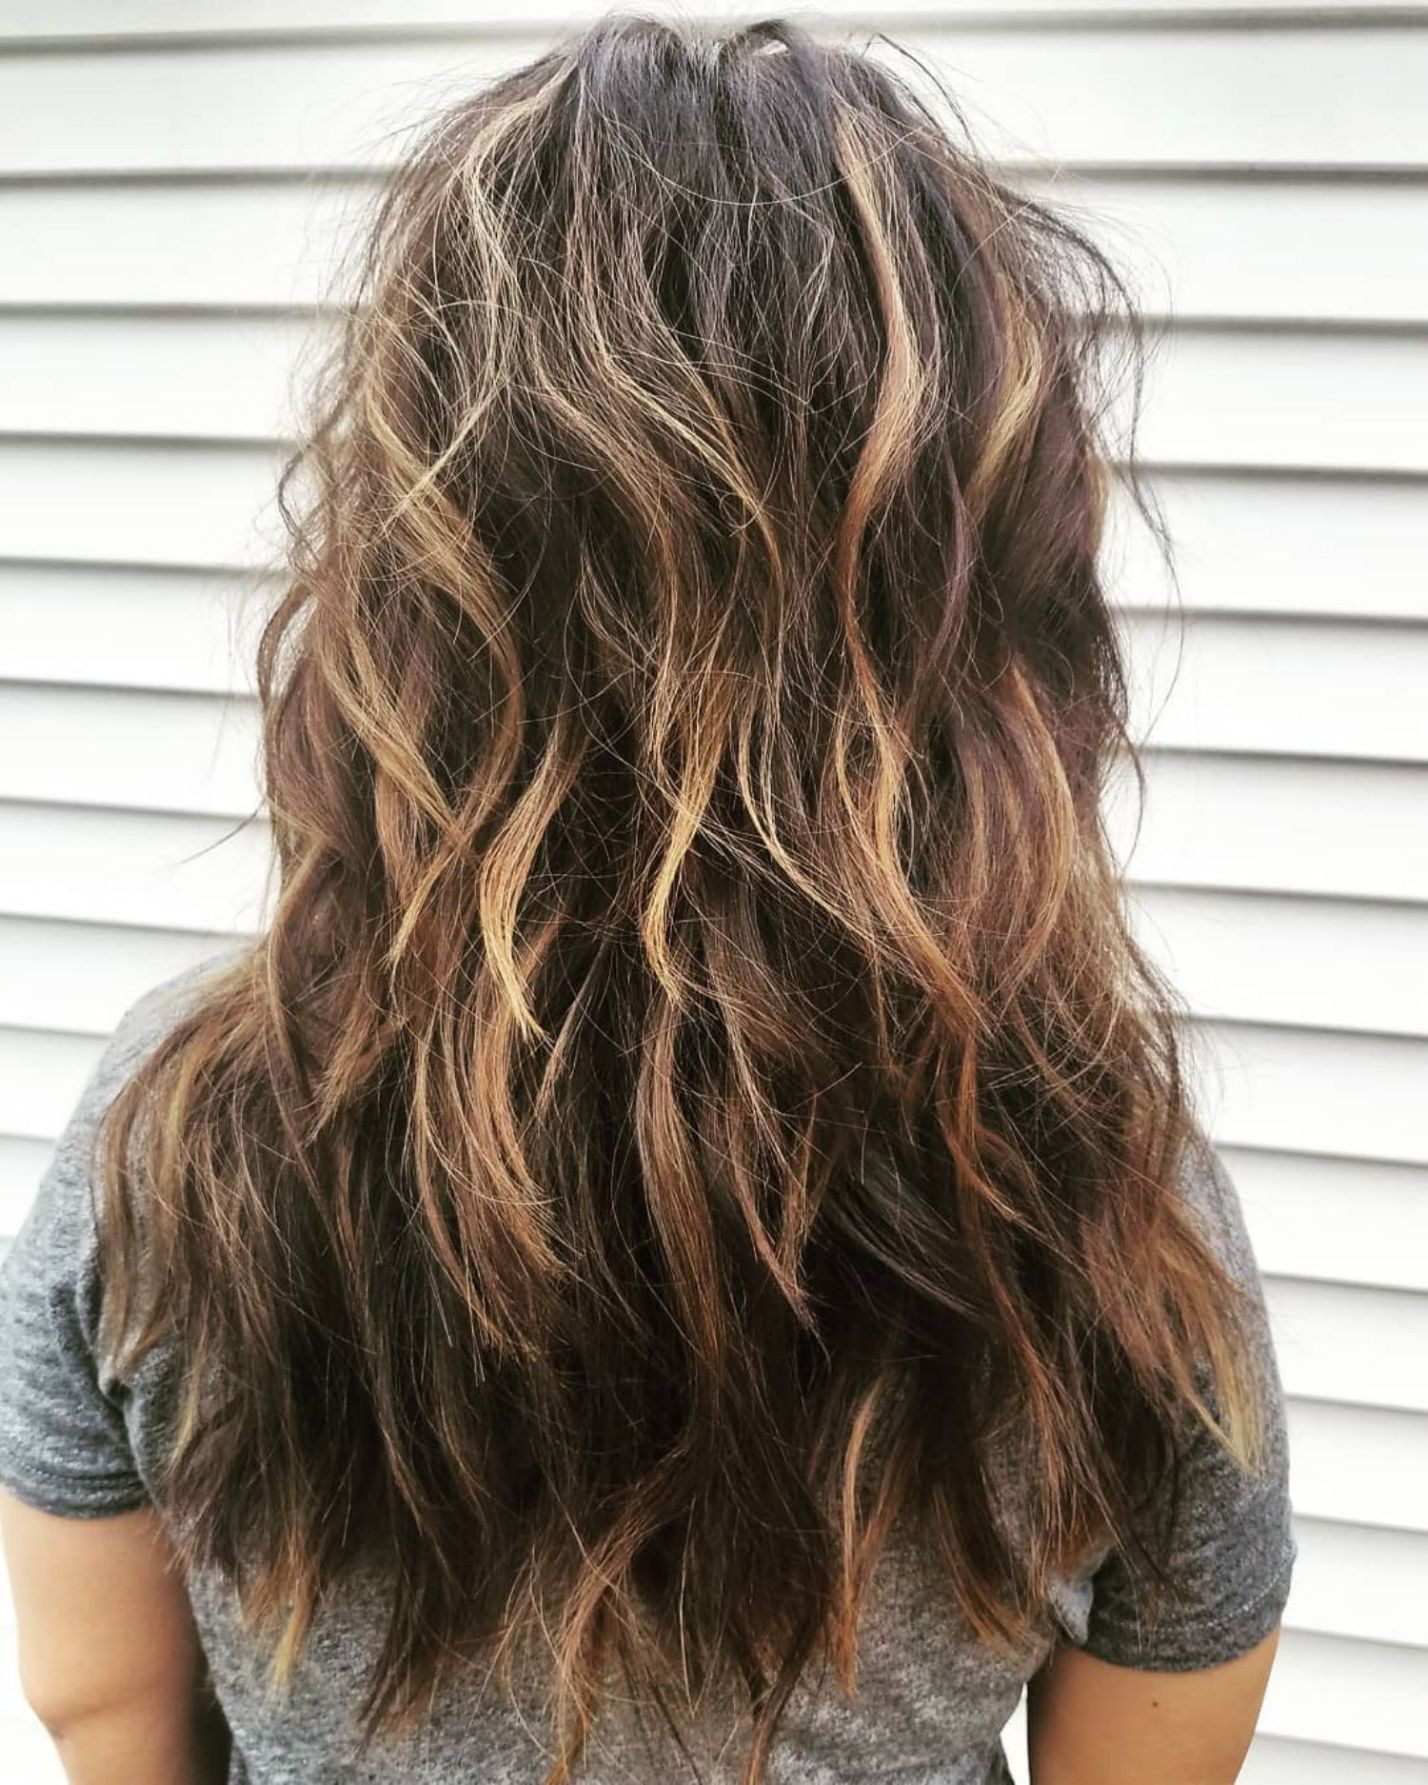 60 Lovely Long Shag Haircuts For Effortless Stylish Looks Long Shag Hairstyles Long Shag Haircut Curly Hair Styles Naturally